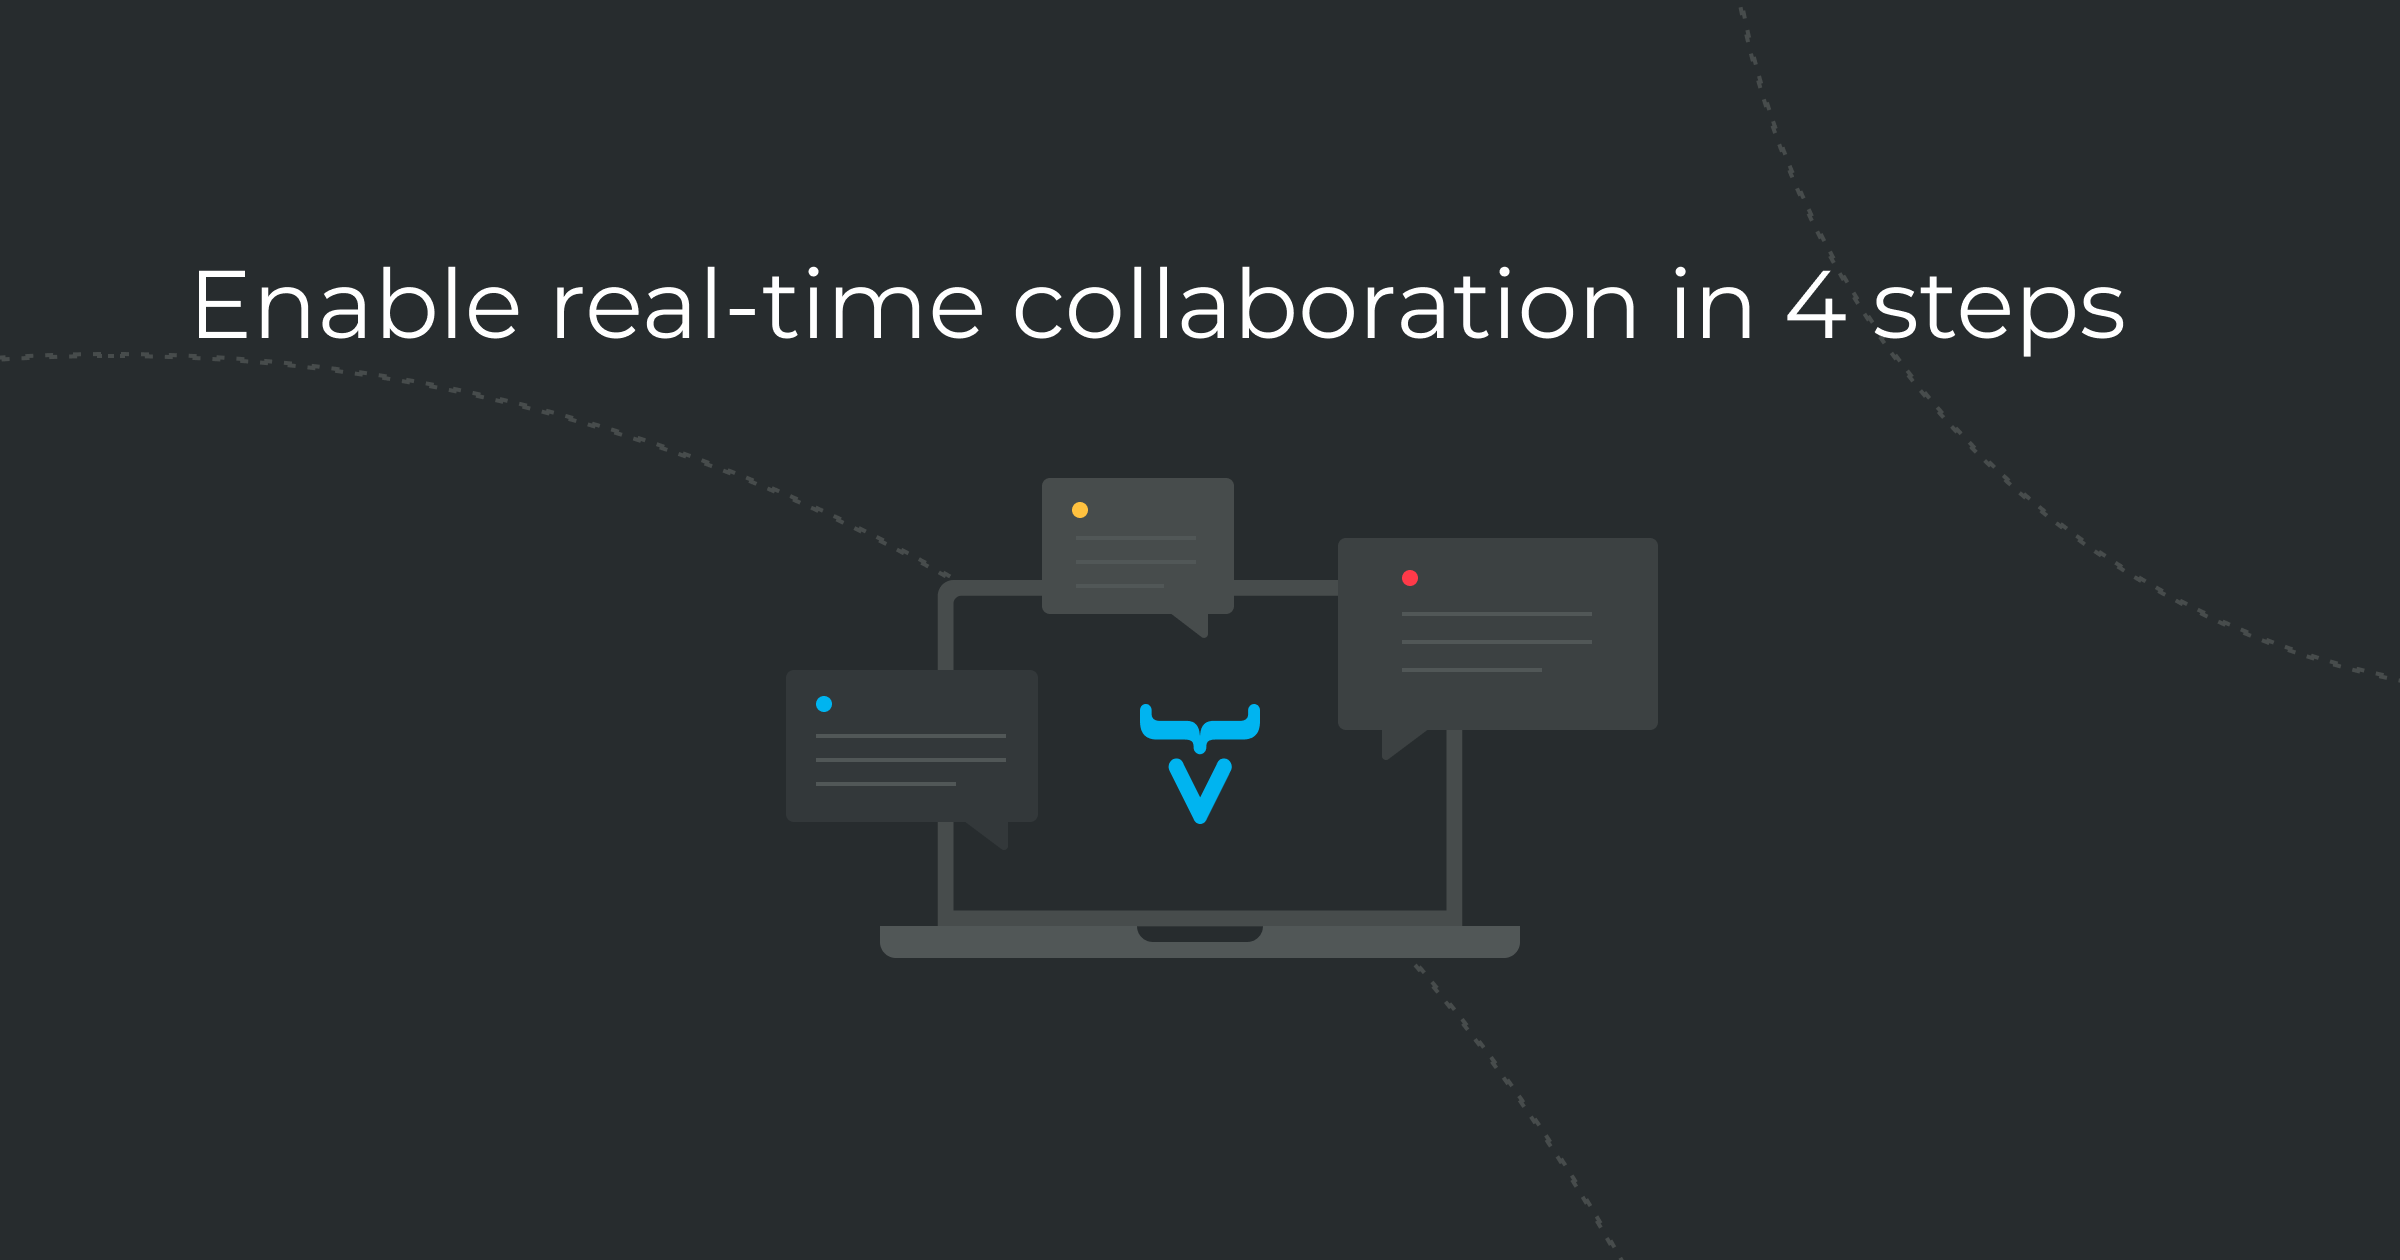 Collaboration Engine feature image 4 steps